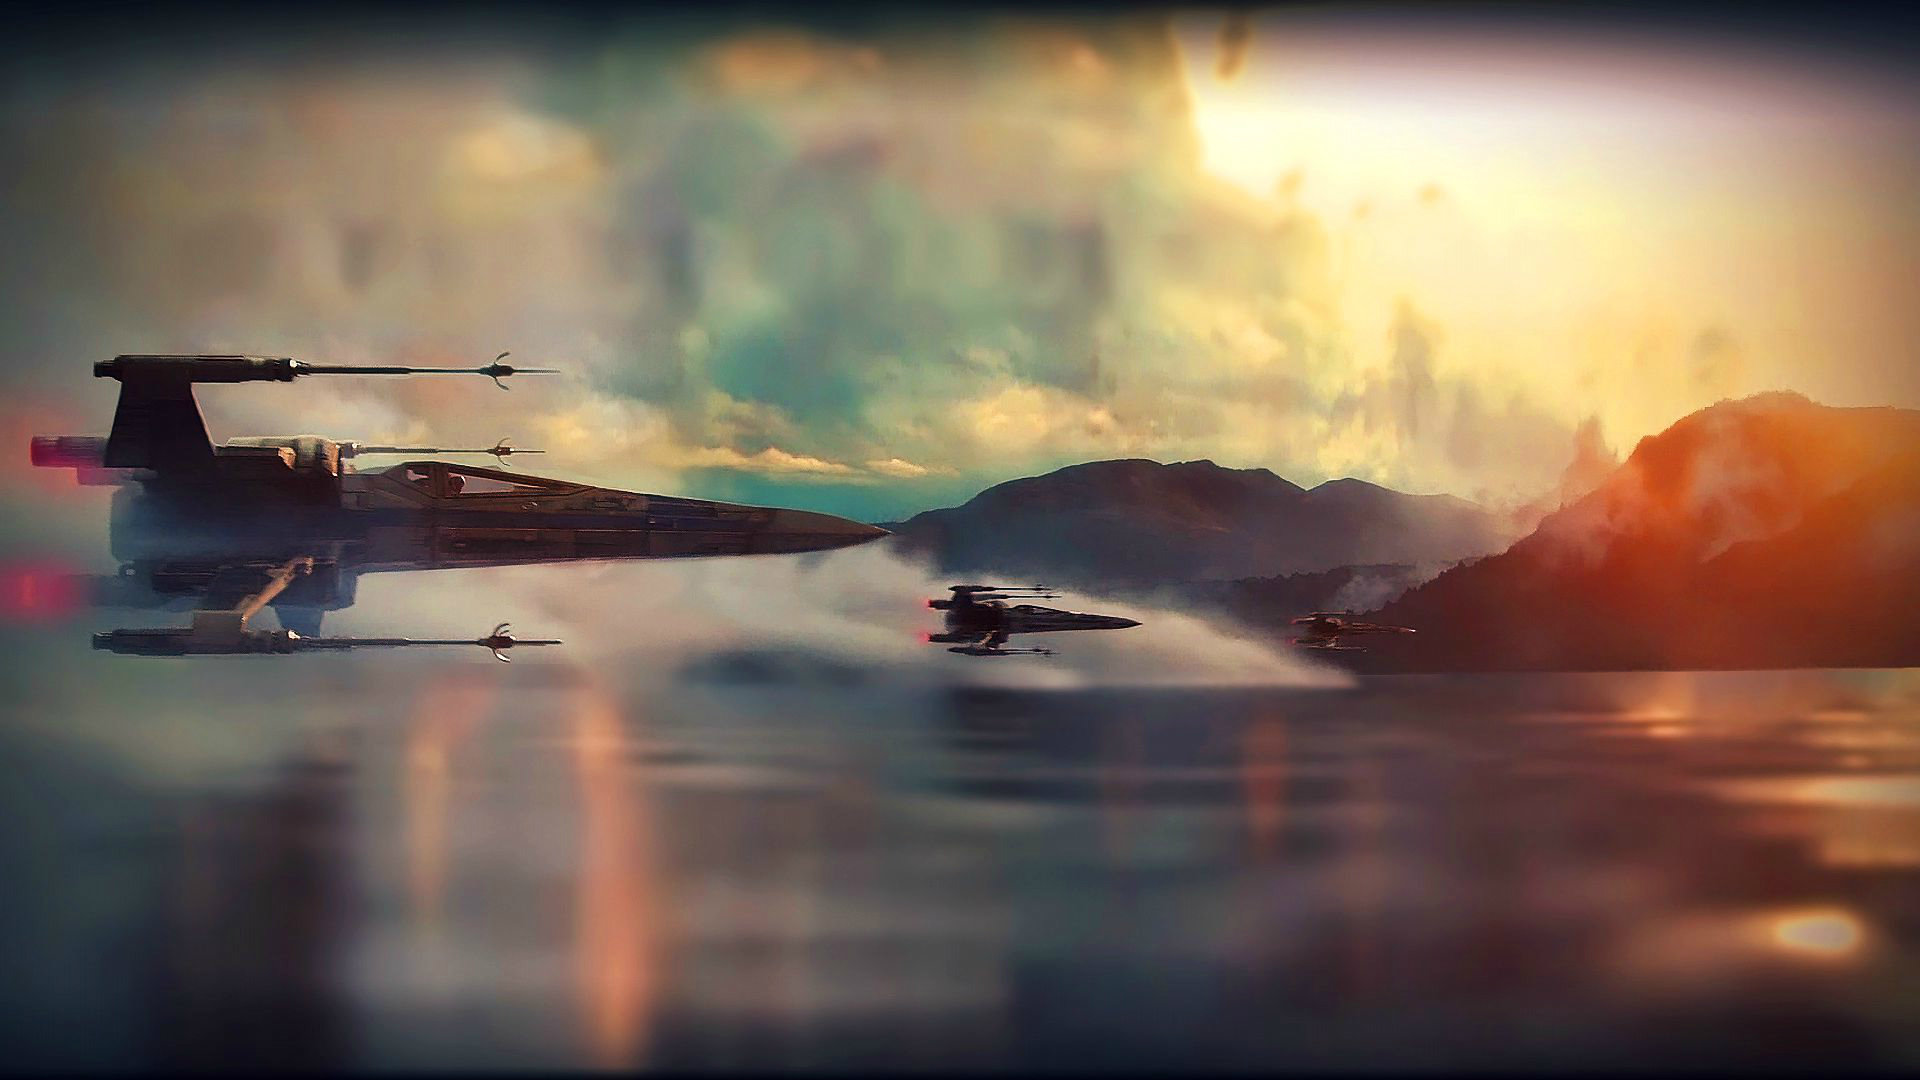 Star Wars Wallpapers 1920x1080 Full Hd 1080p Desktop